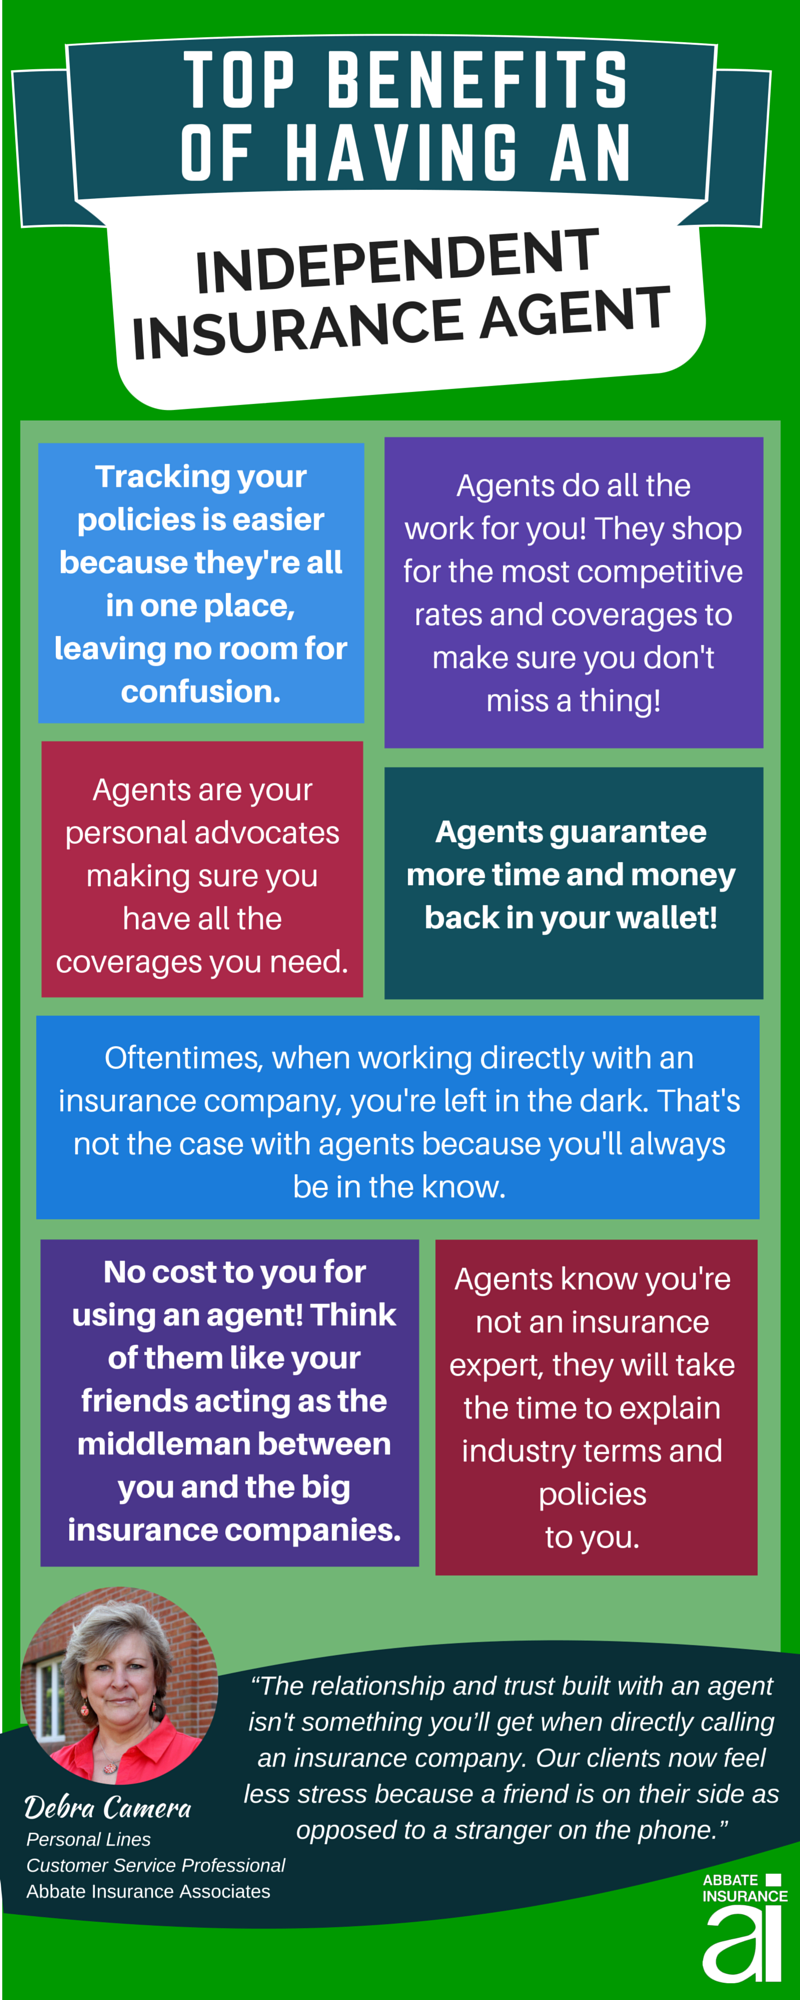 Top Benefits of Having an Independent Insurance Agent - Abbate Insurance